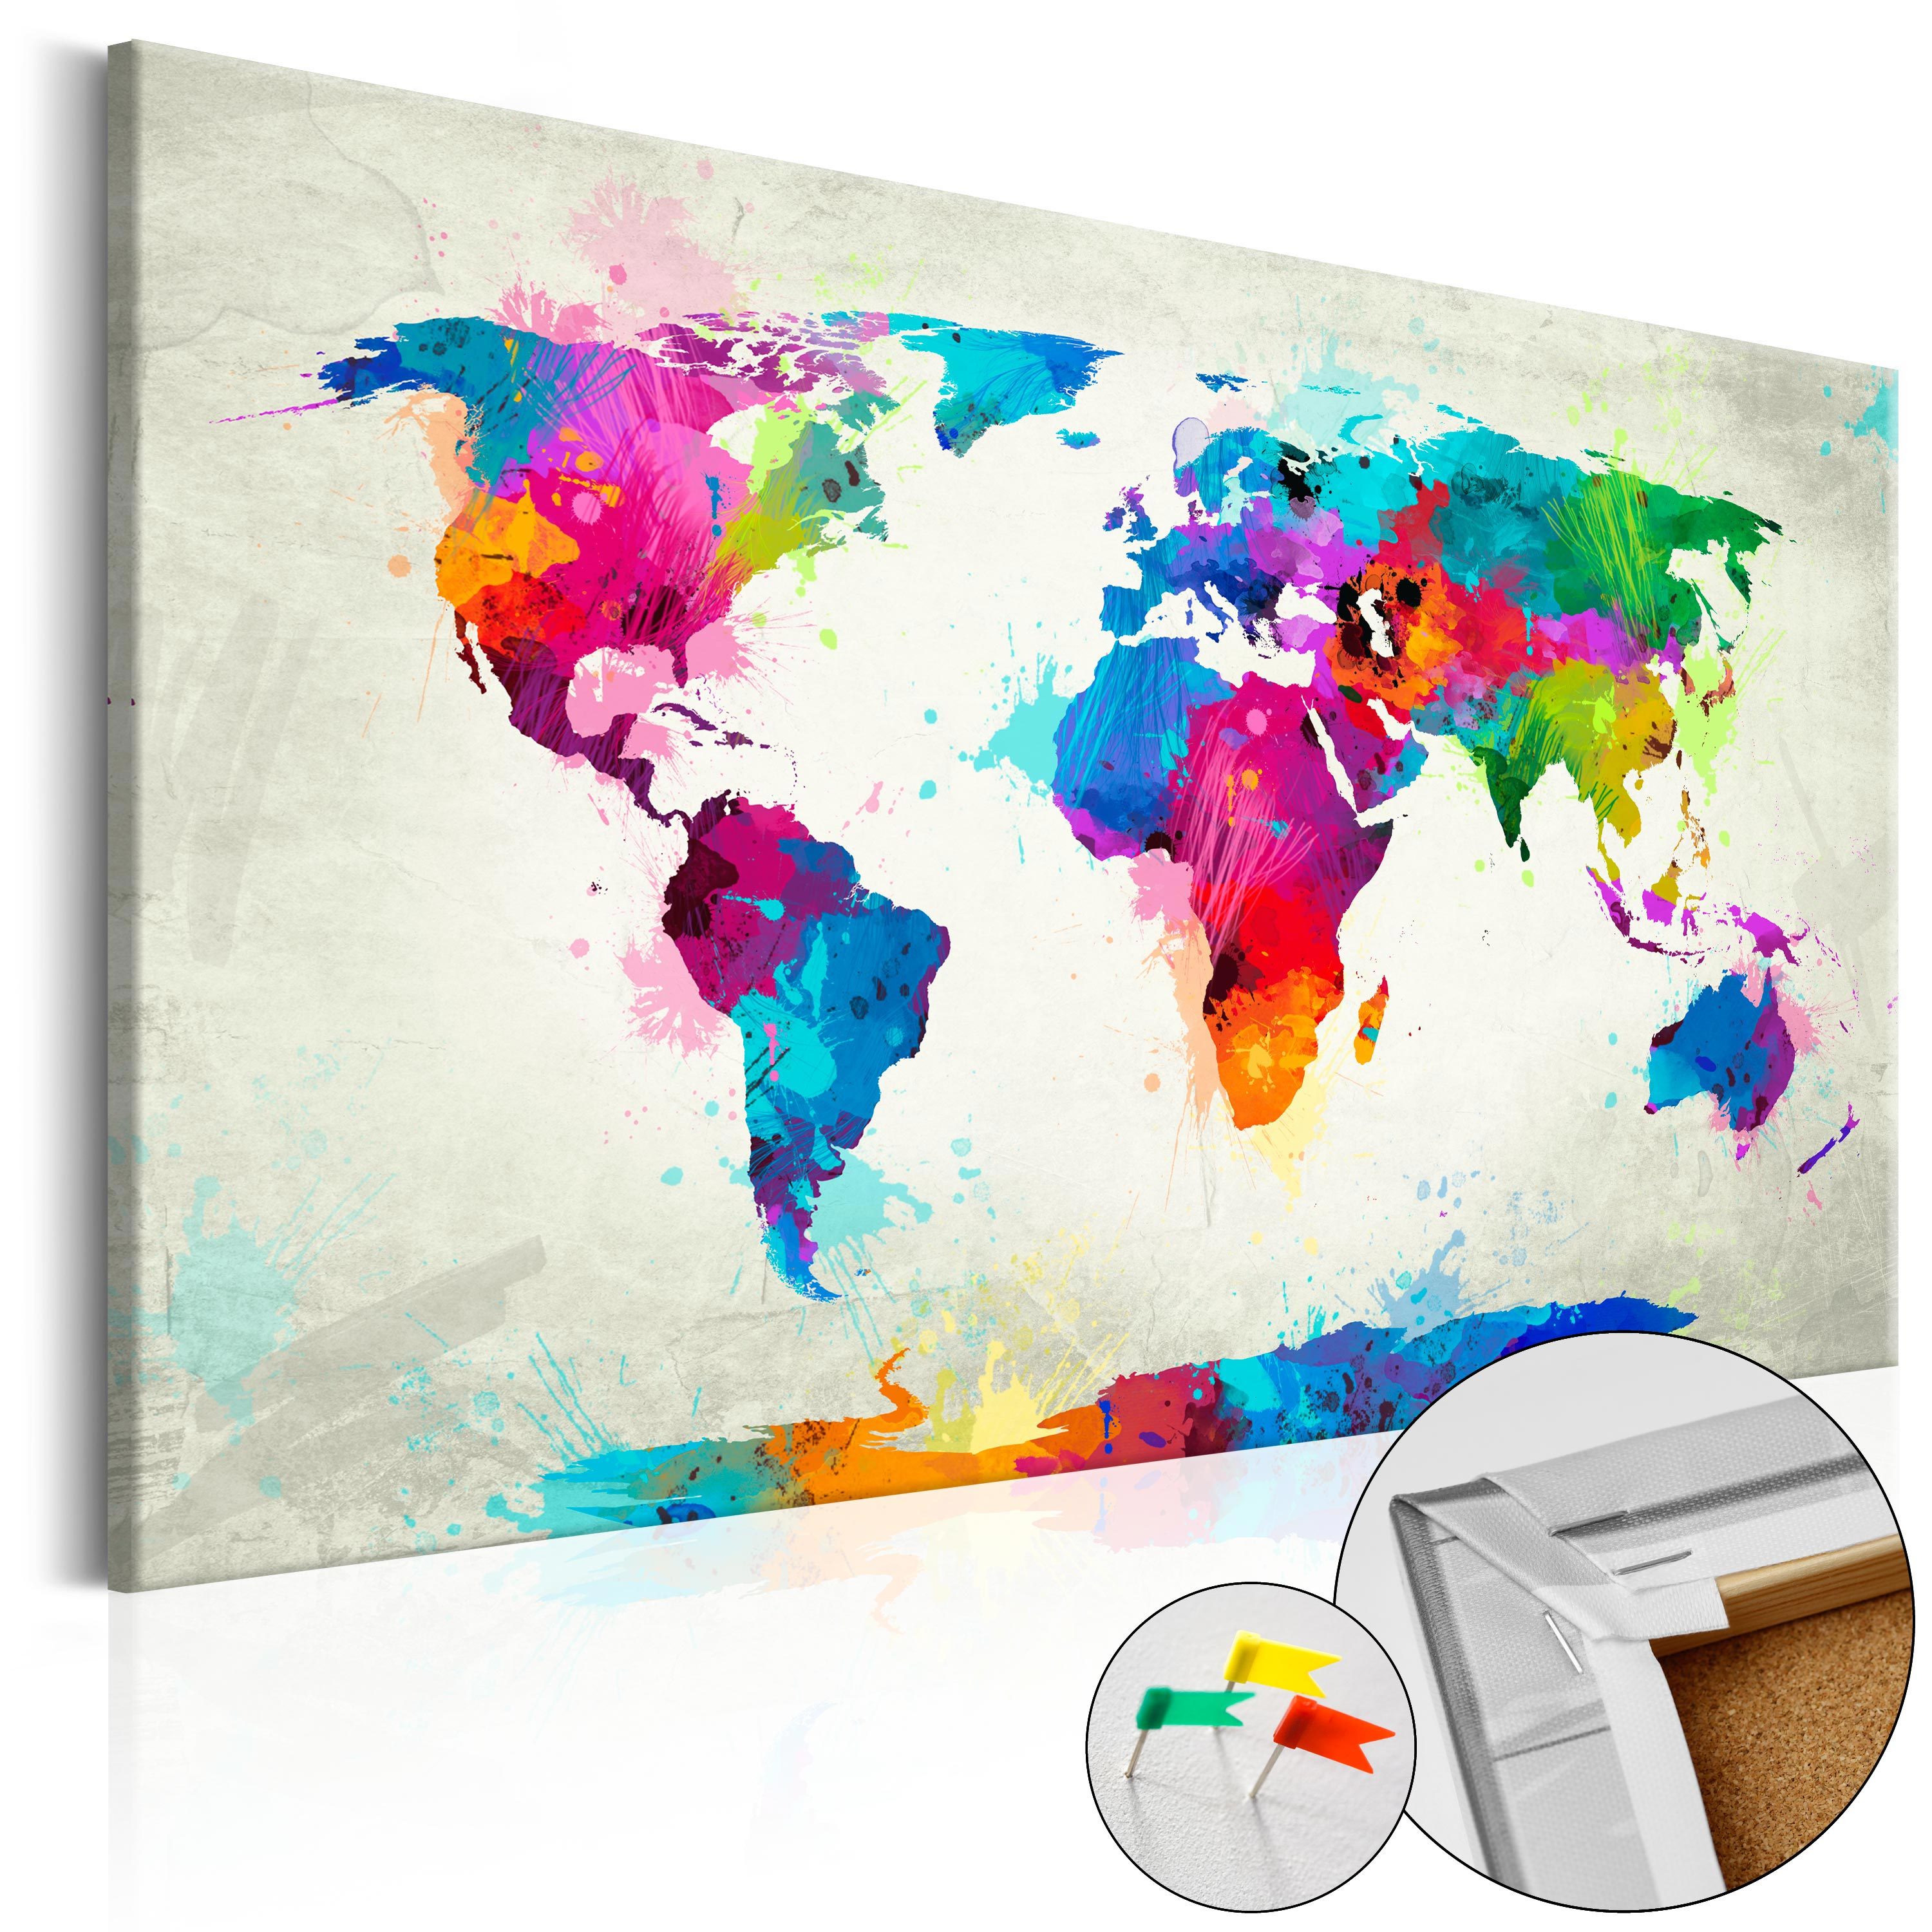 Pinboard image printed on canvas with cork backing pin board map pinboard image printed on canvas with cork backing gumiabroncs Gallery